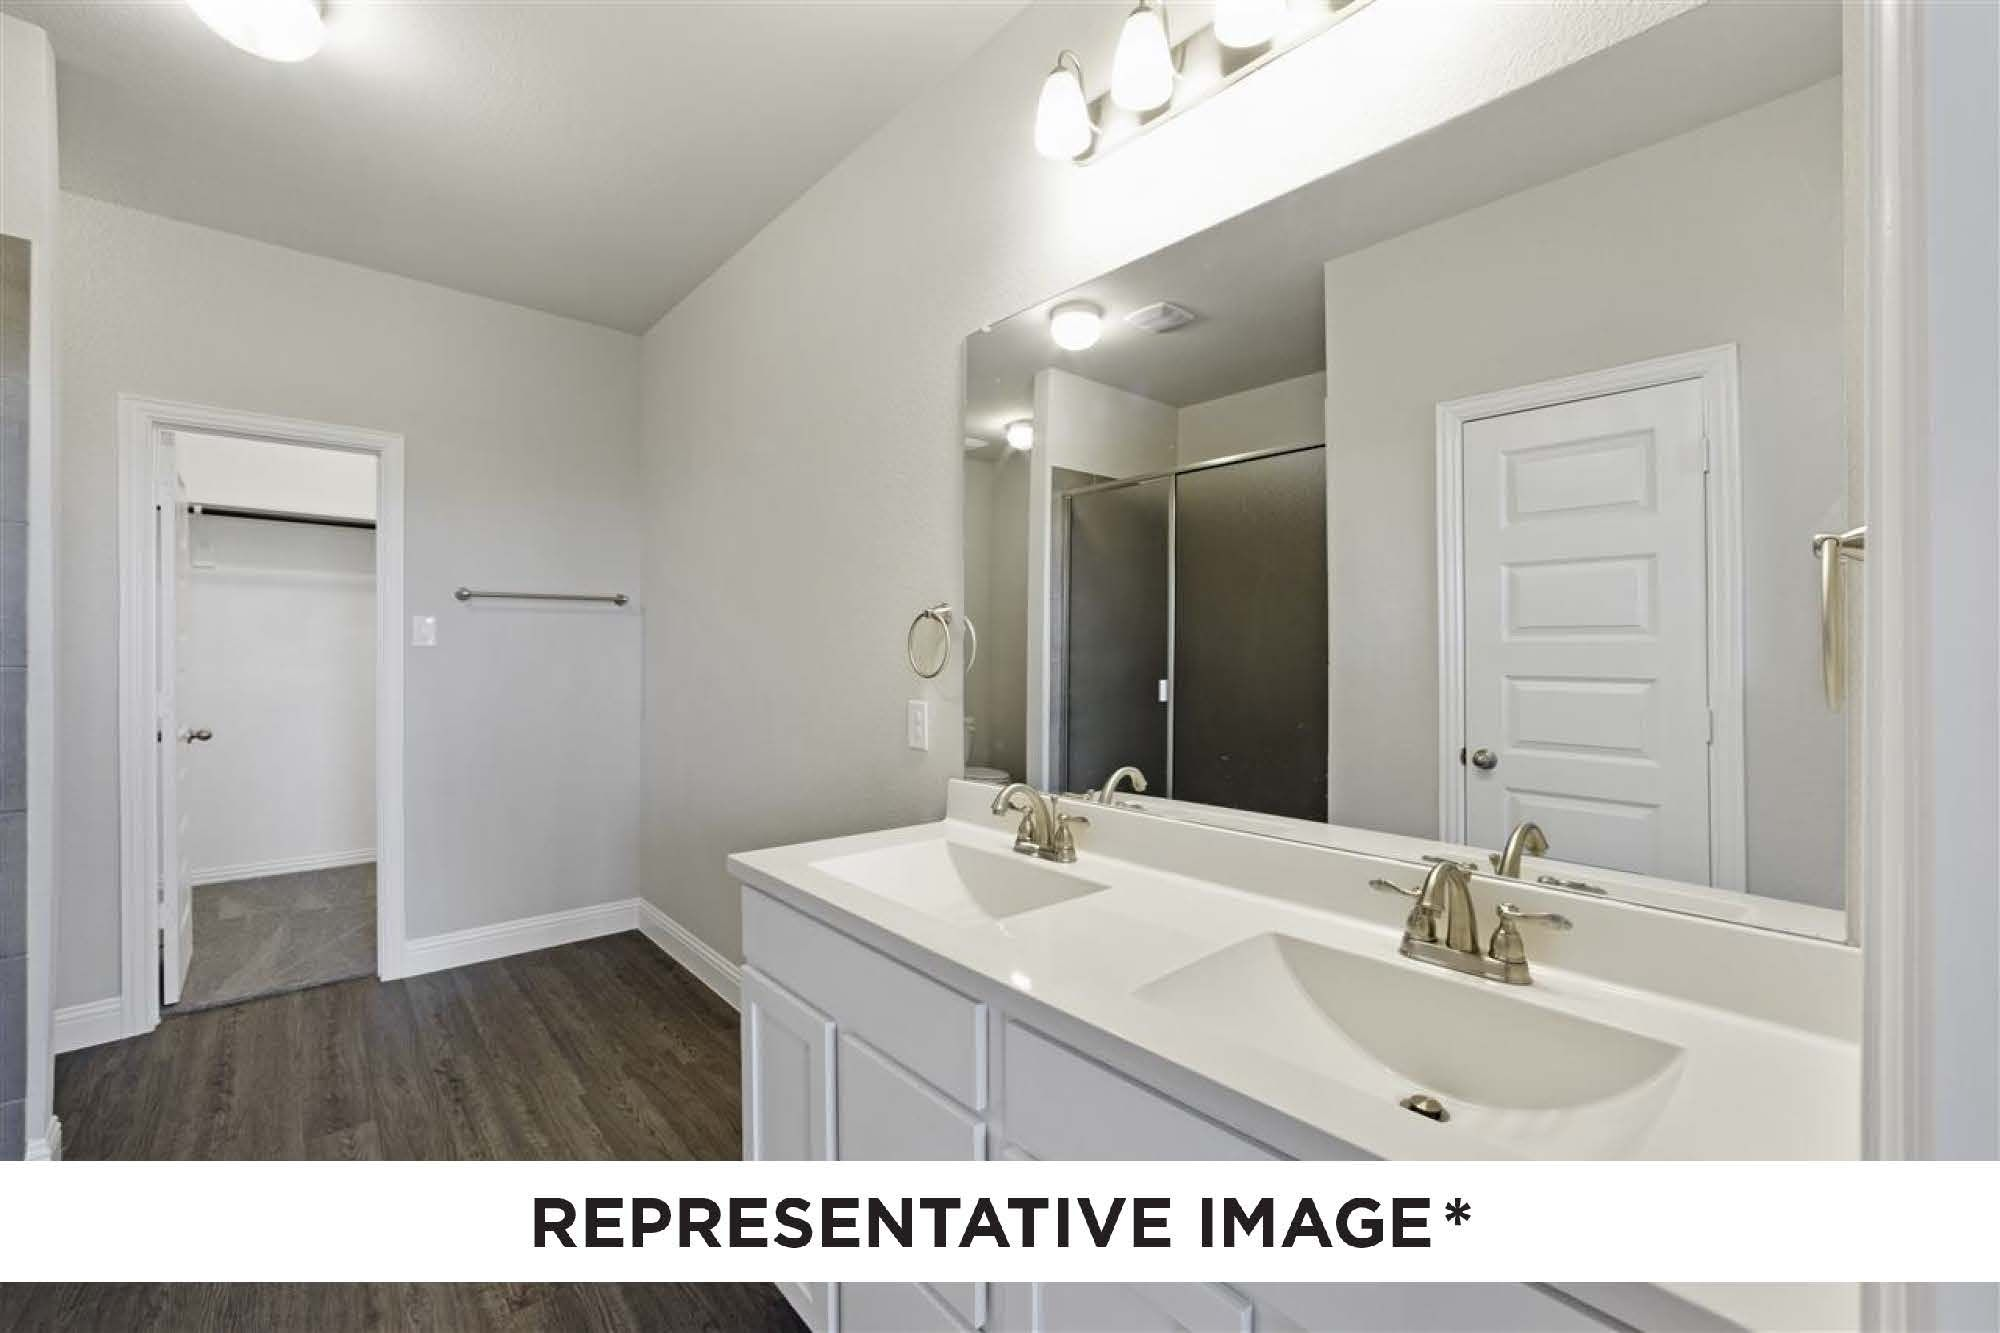 Bathroom featured in the Alder By HistoryMaker Homes    in Houston, TX